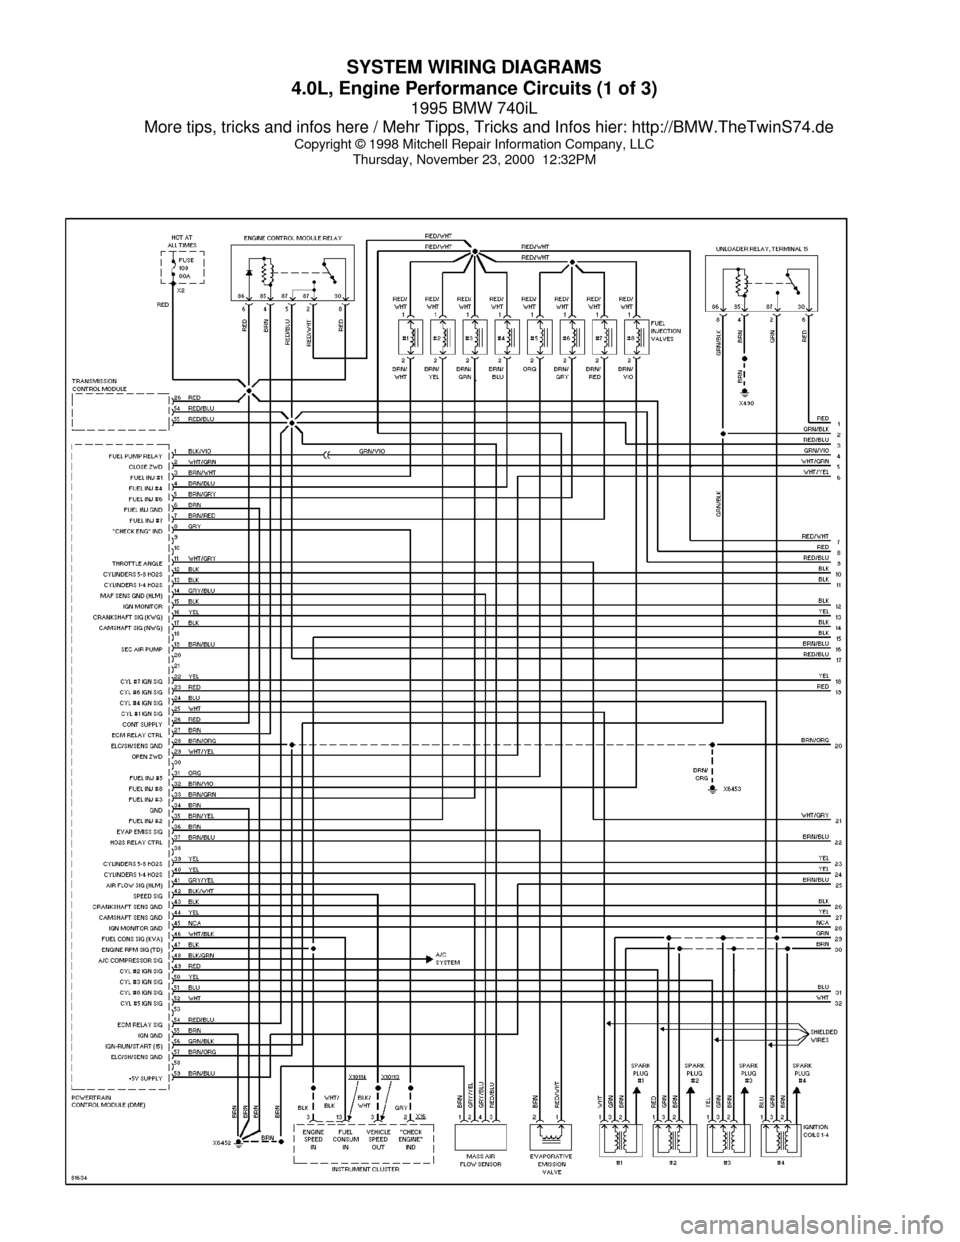 1997 bmw 740 wiring diagrams automotive 04t rakanzleiberlin de \u20221997 bmw 740 wiring diagrams automotive wiring diagram rh 28 jktransport nl